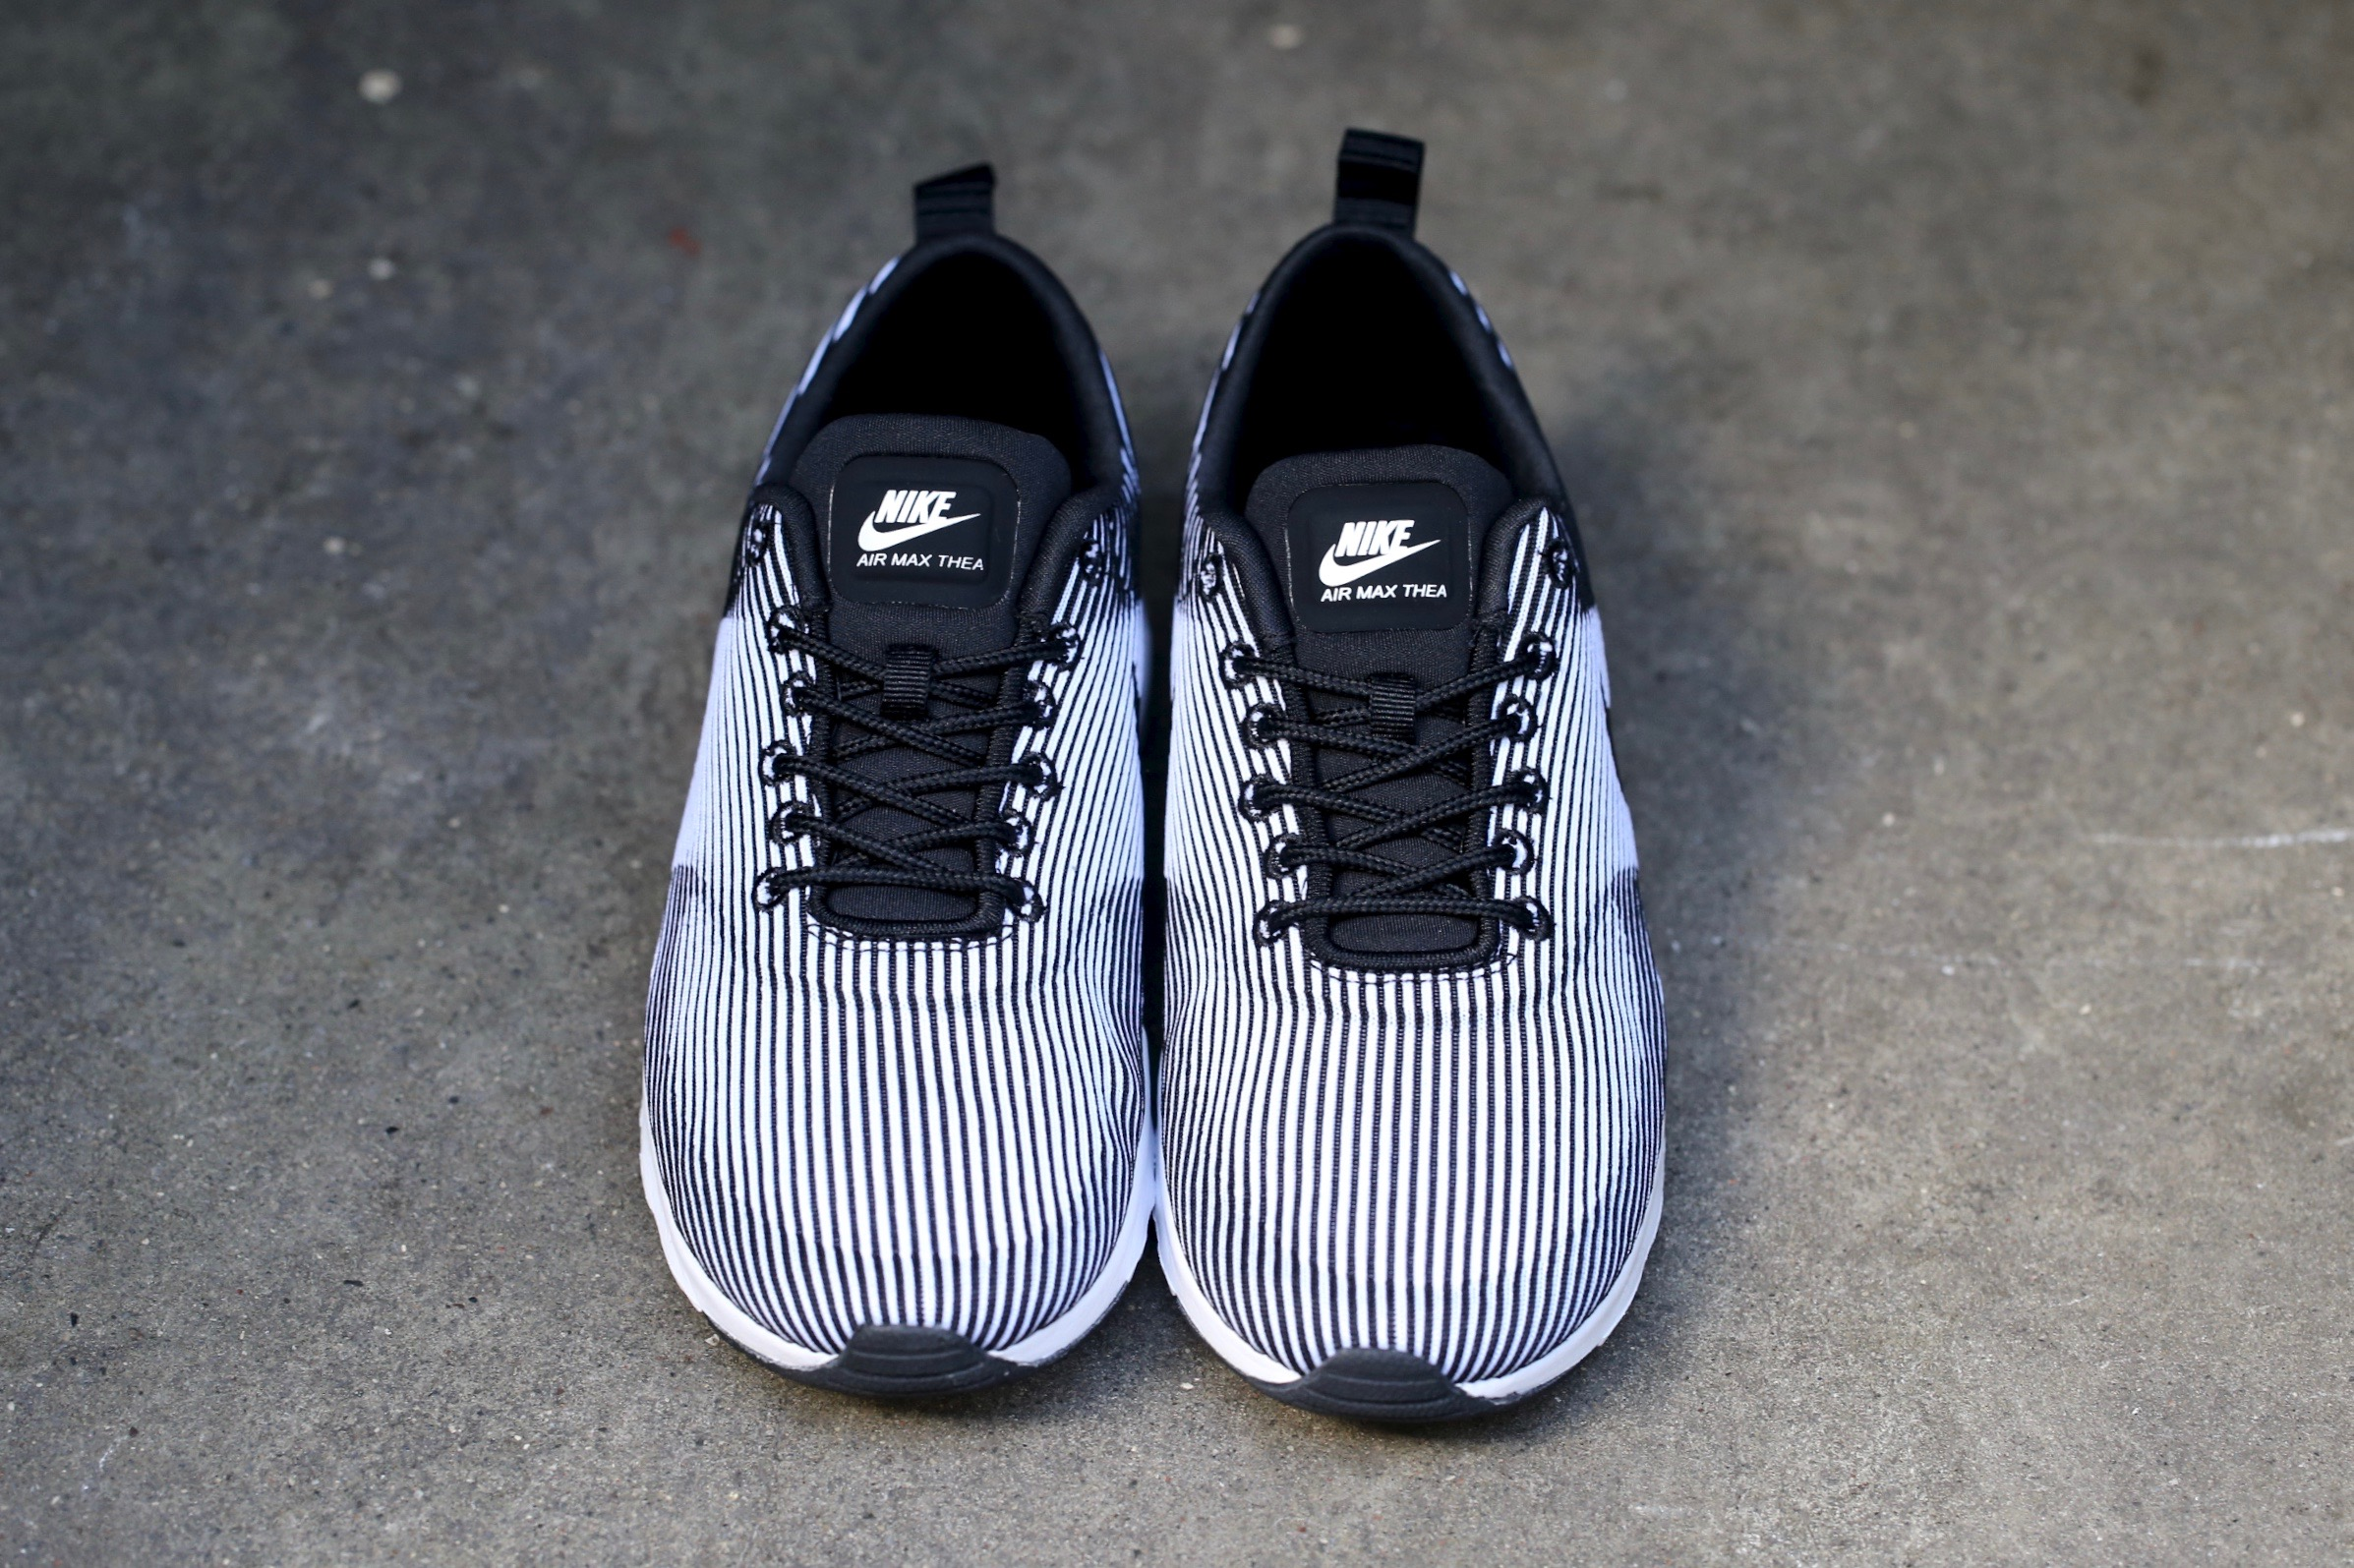 for whole family picked up shades of Nike W Air Max Thea KJCRD – Black / White / Metallic Silver – STASP